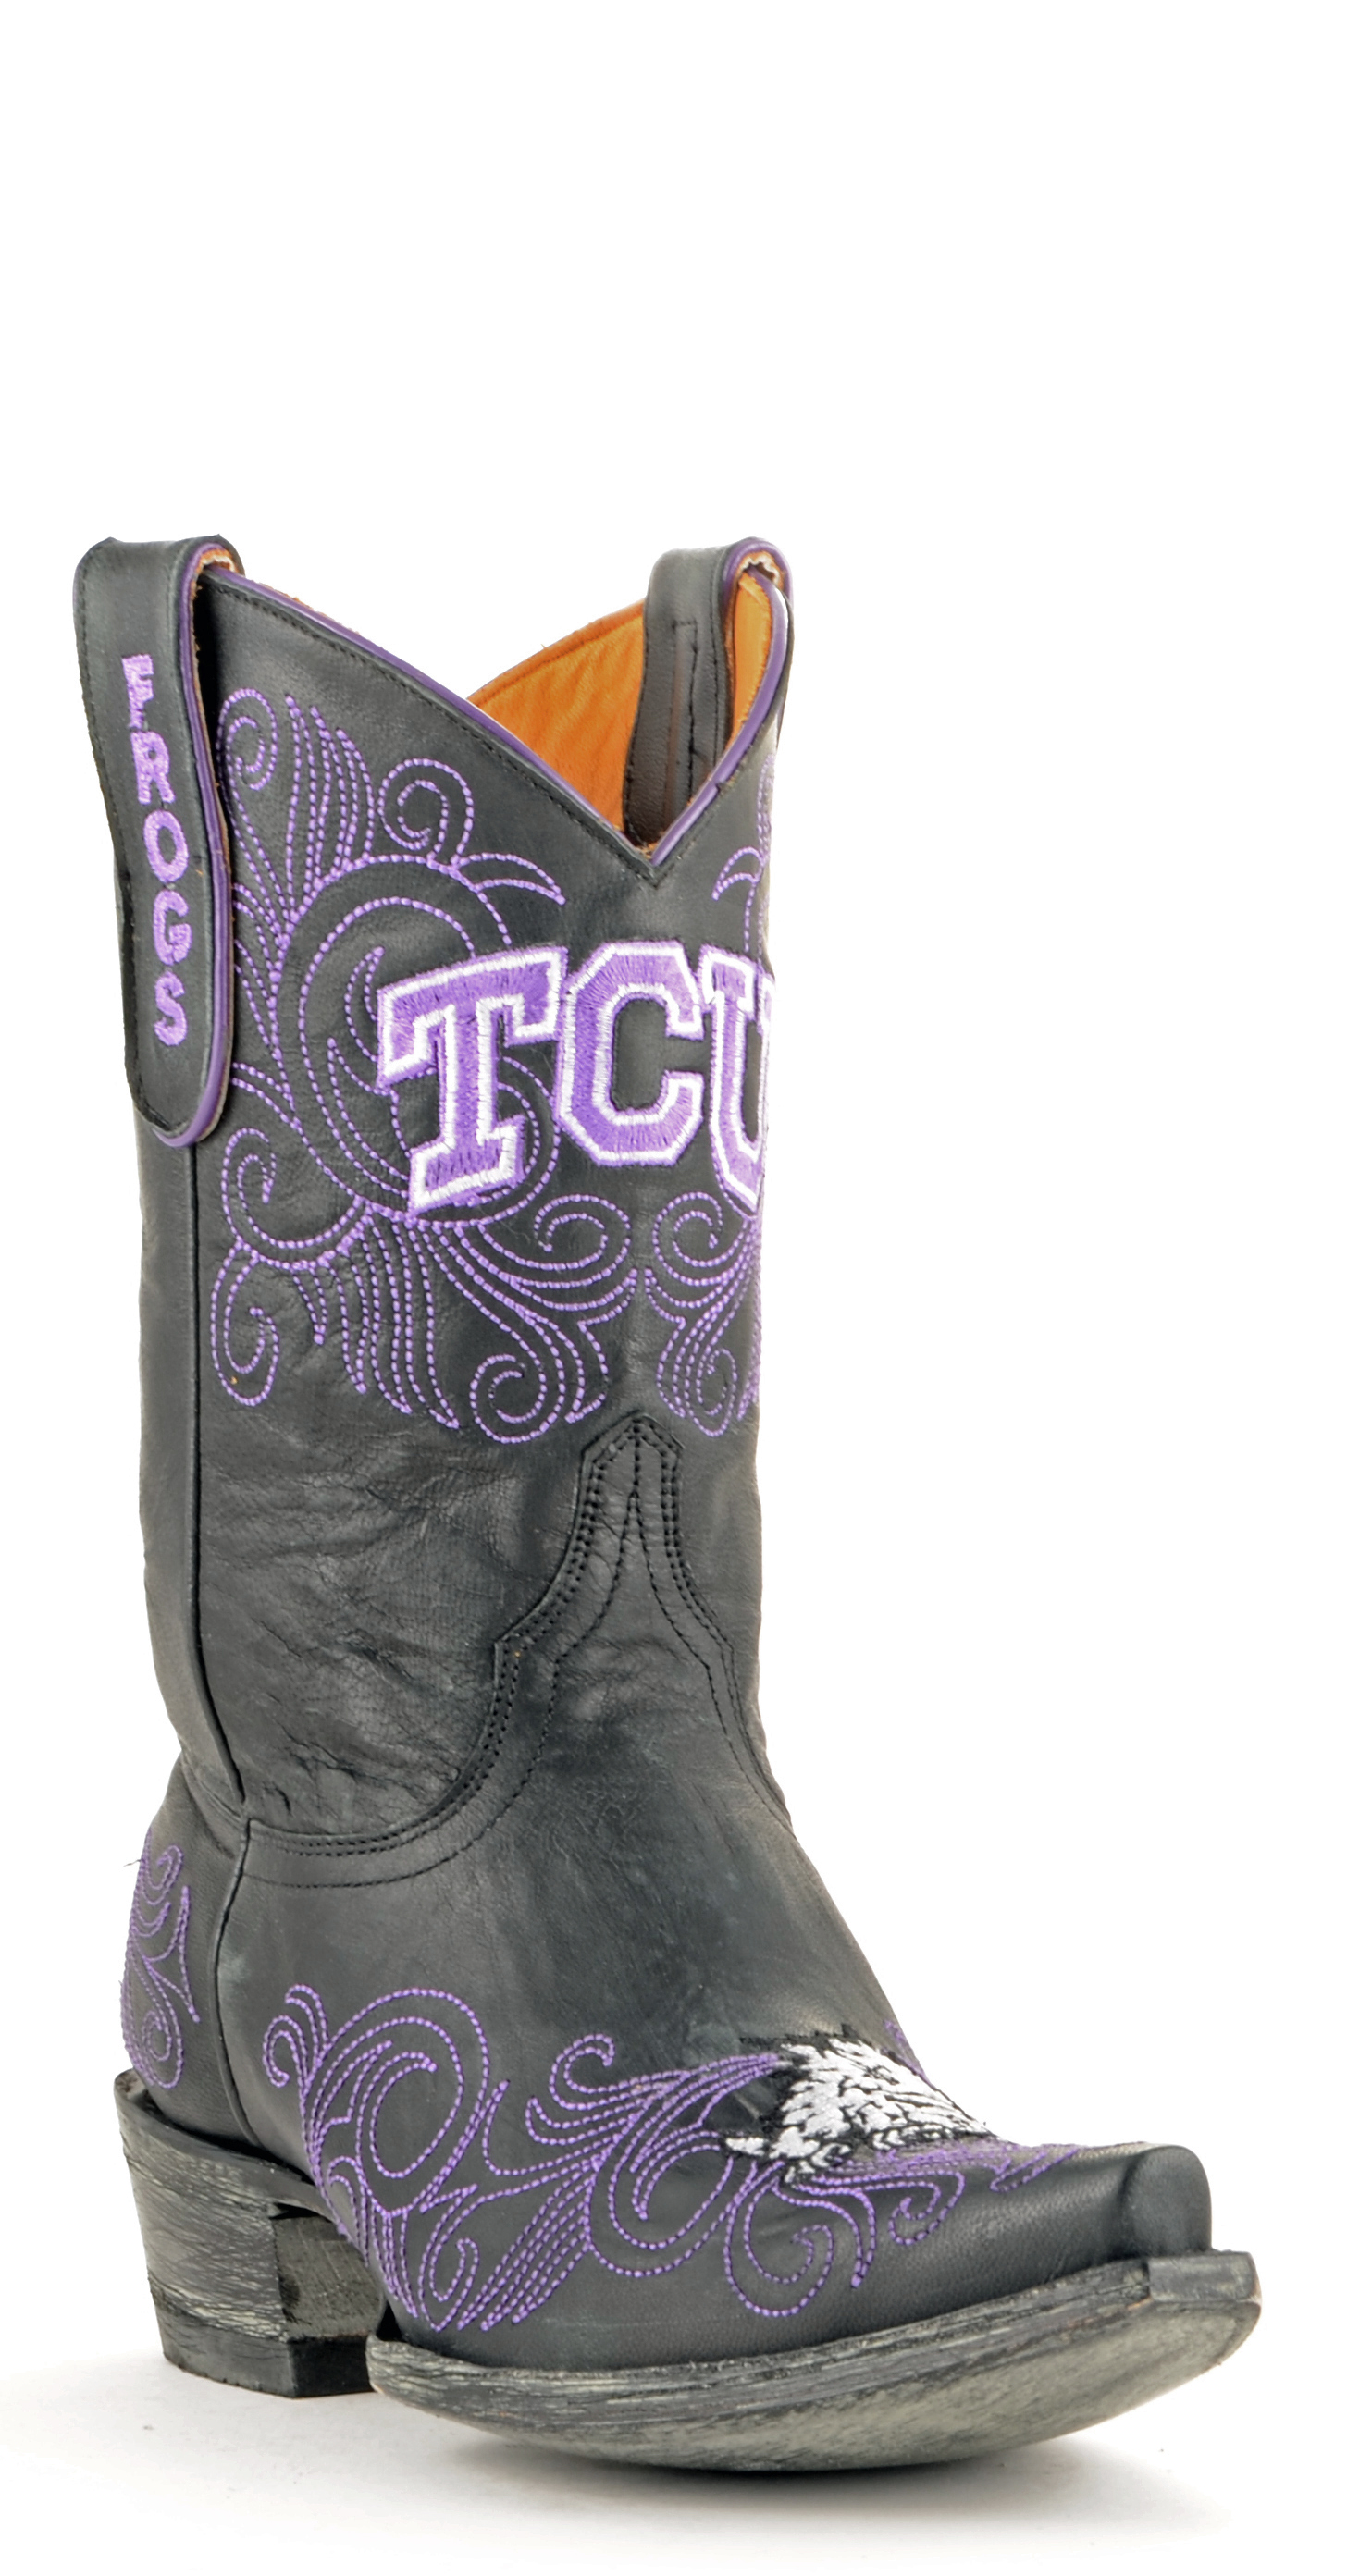 """Gameday Boots Women's 10"""" Short Leather Texas Christian Cowboy Boots by GameDay Boots"""